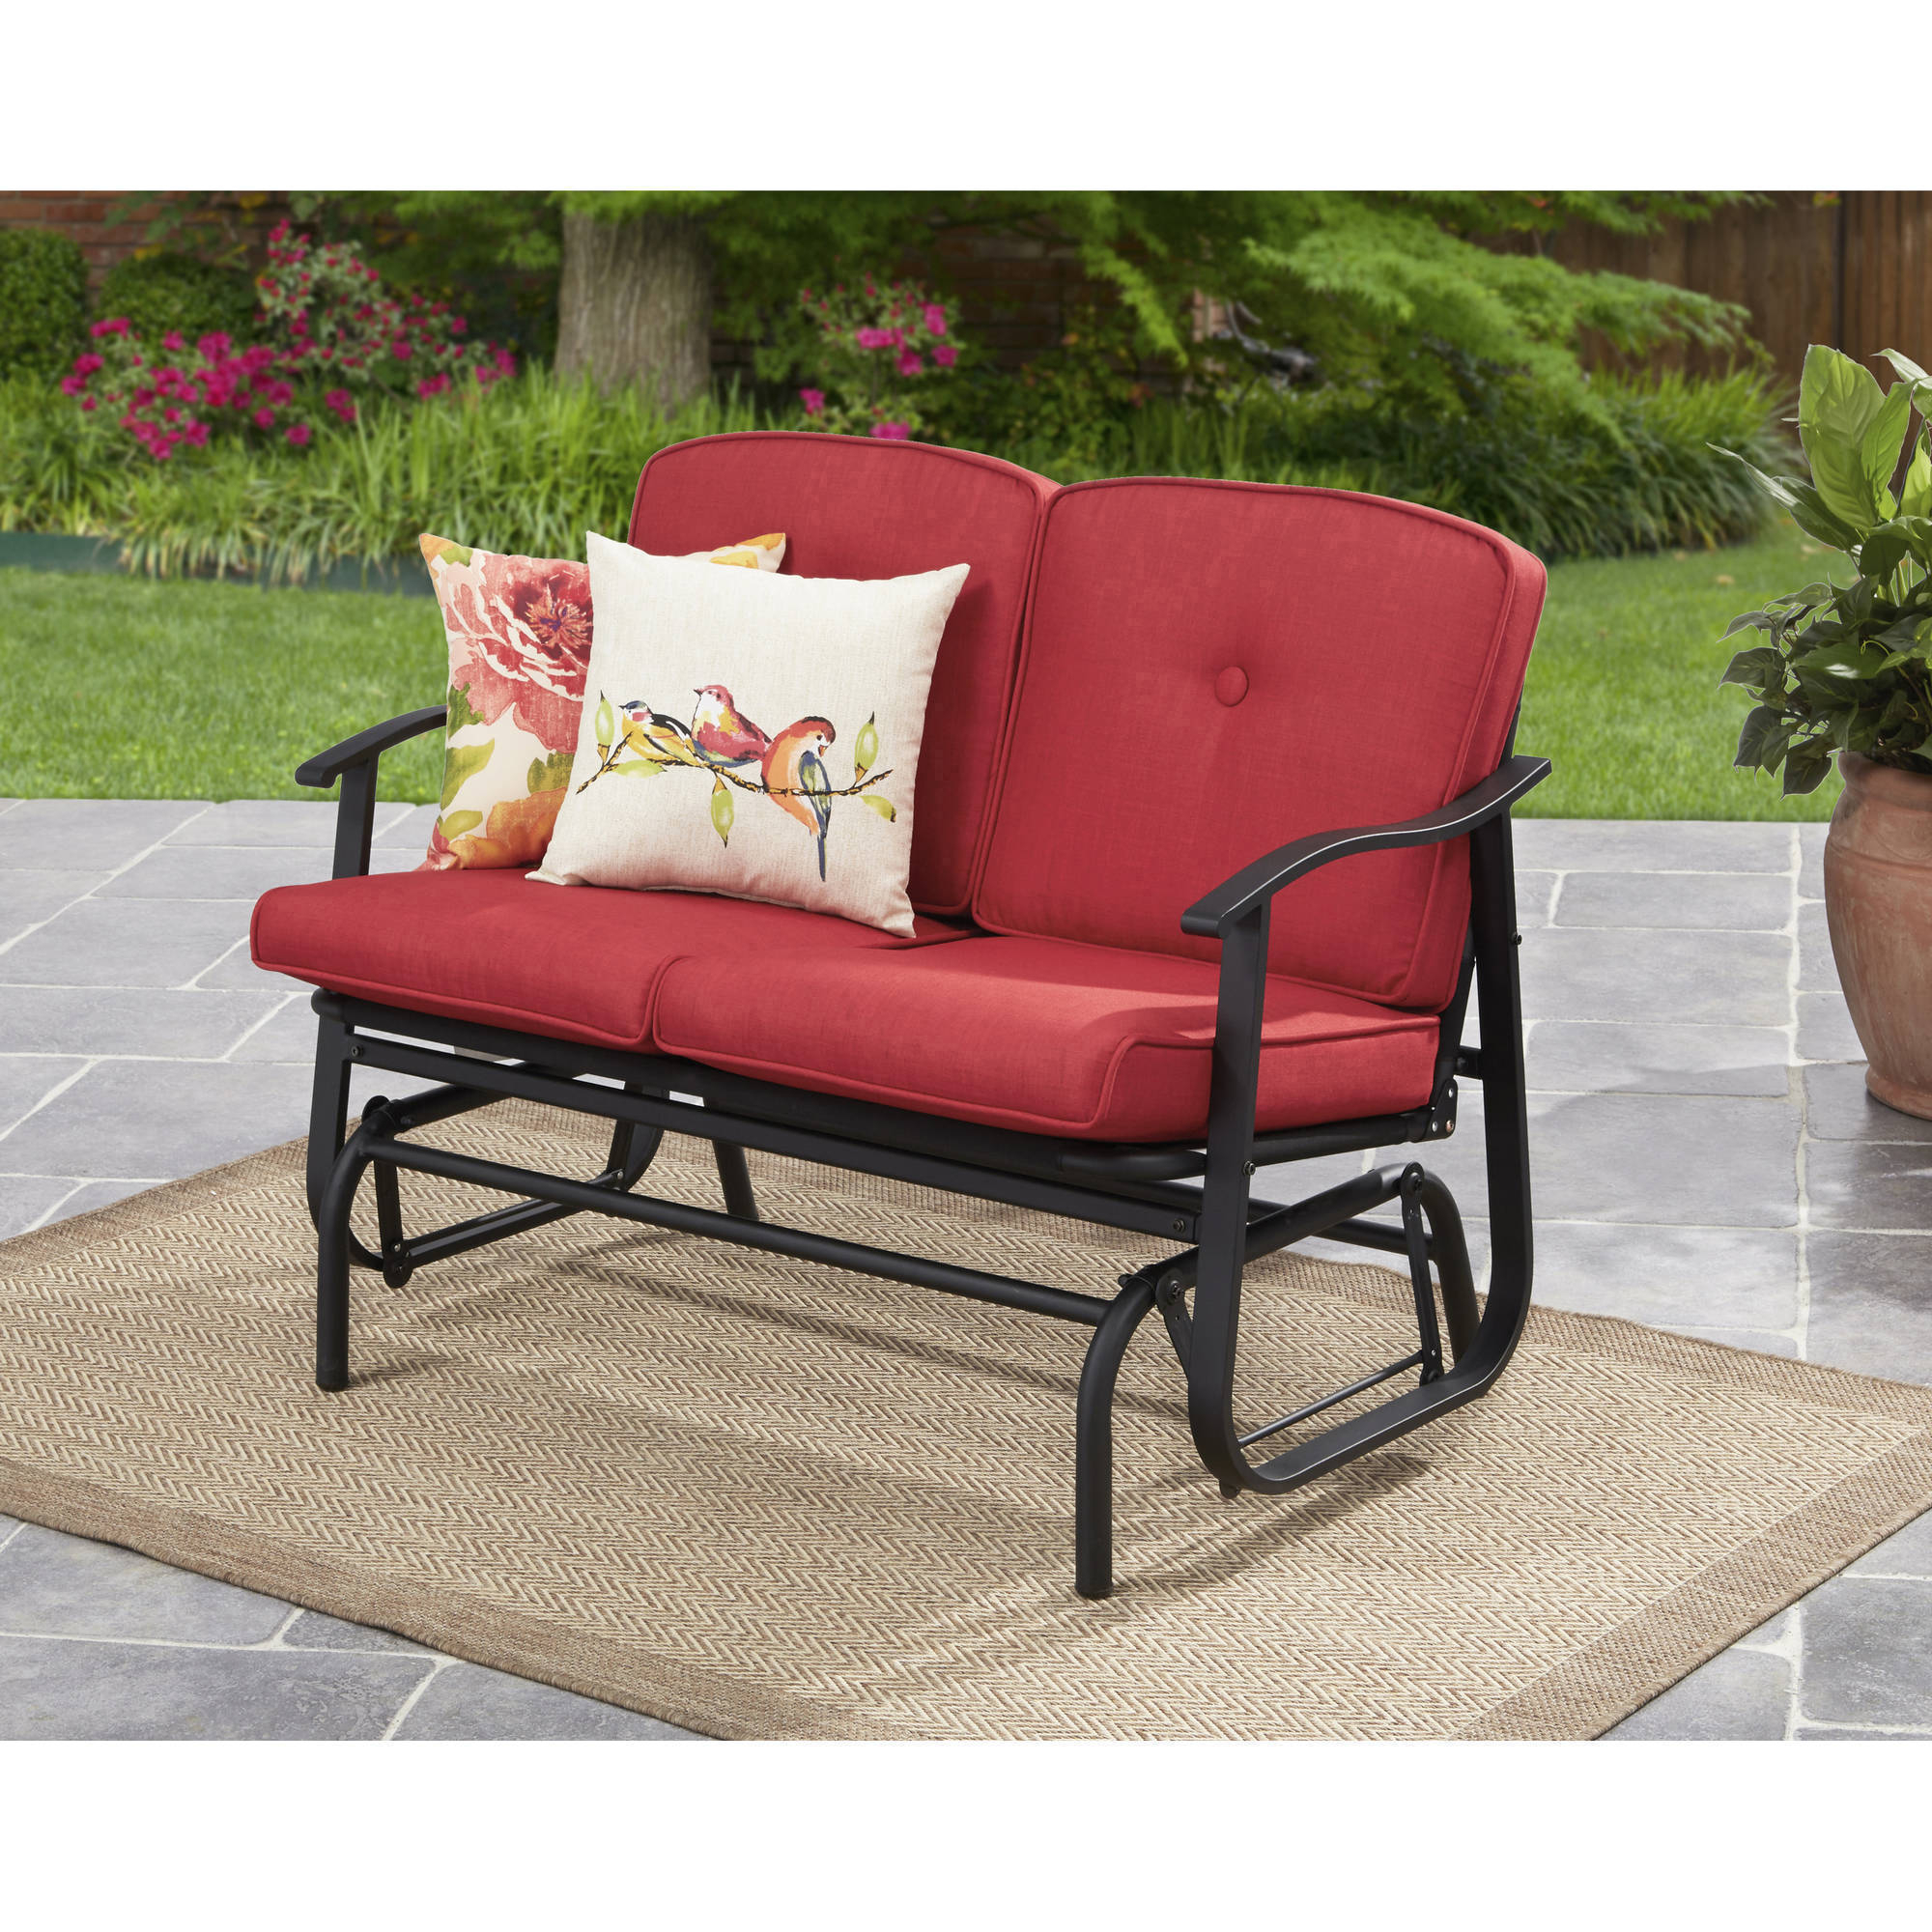 Mainstays Belden Park Outdoor Loveseat Glider With Cushion – Walmart Pertaining To Cushioned Glider Benches With Cushions (View 10 of 27)